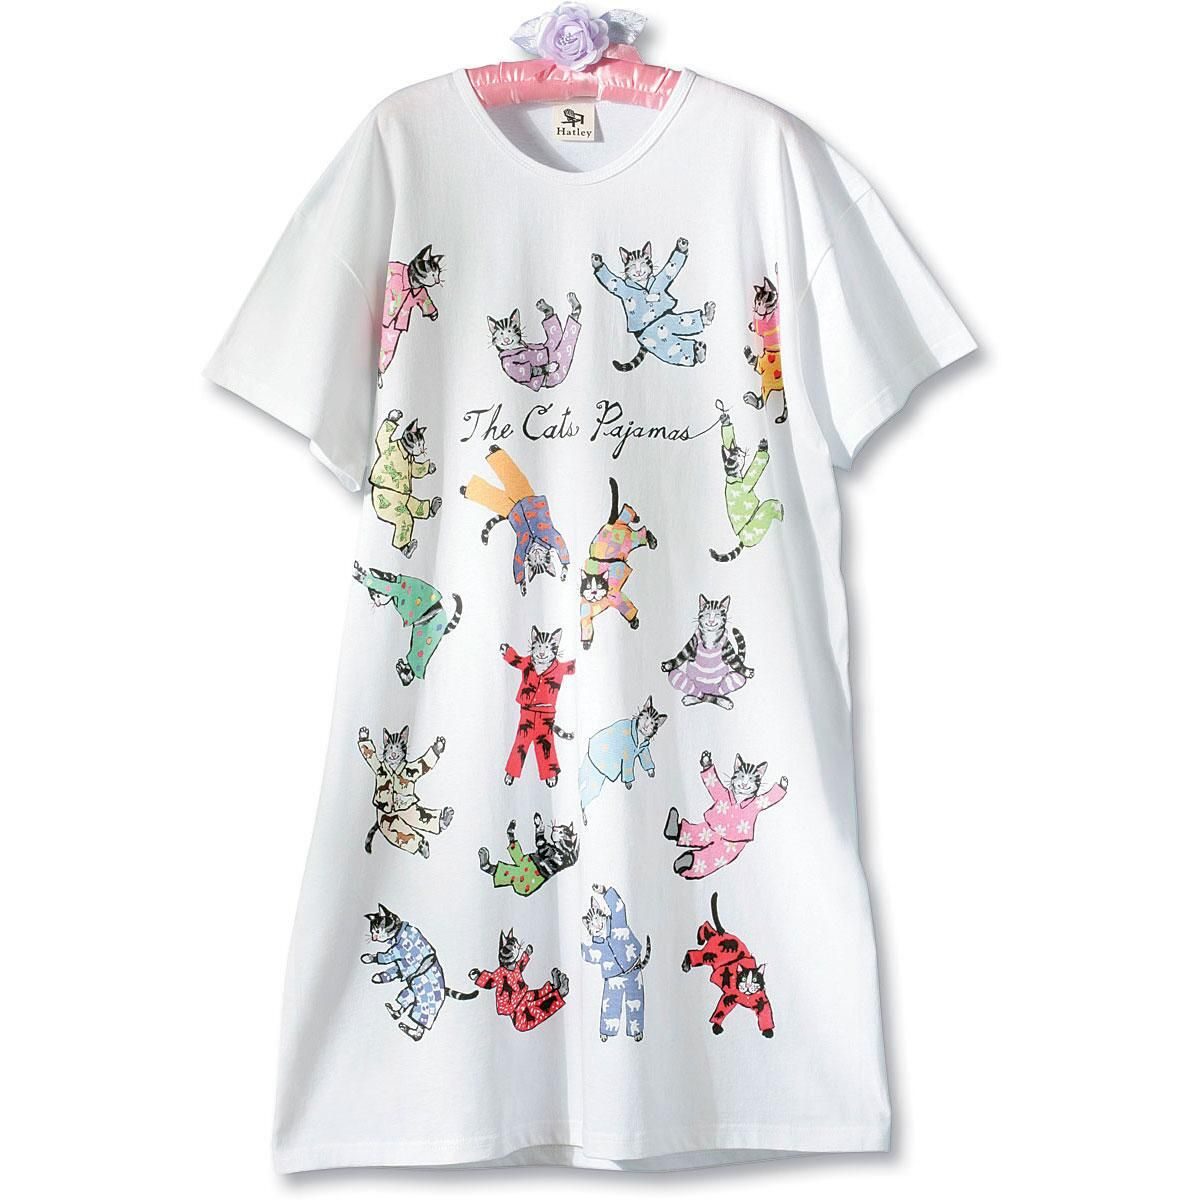 The Cat's Pajamas Nightshirt